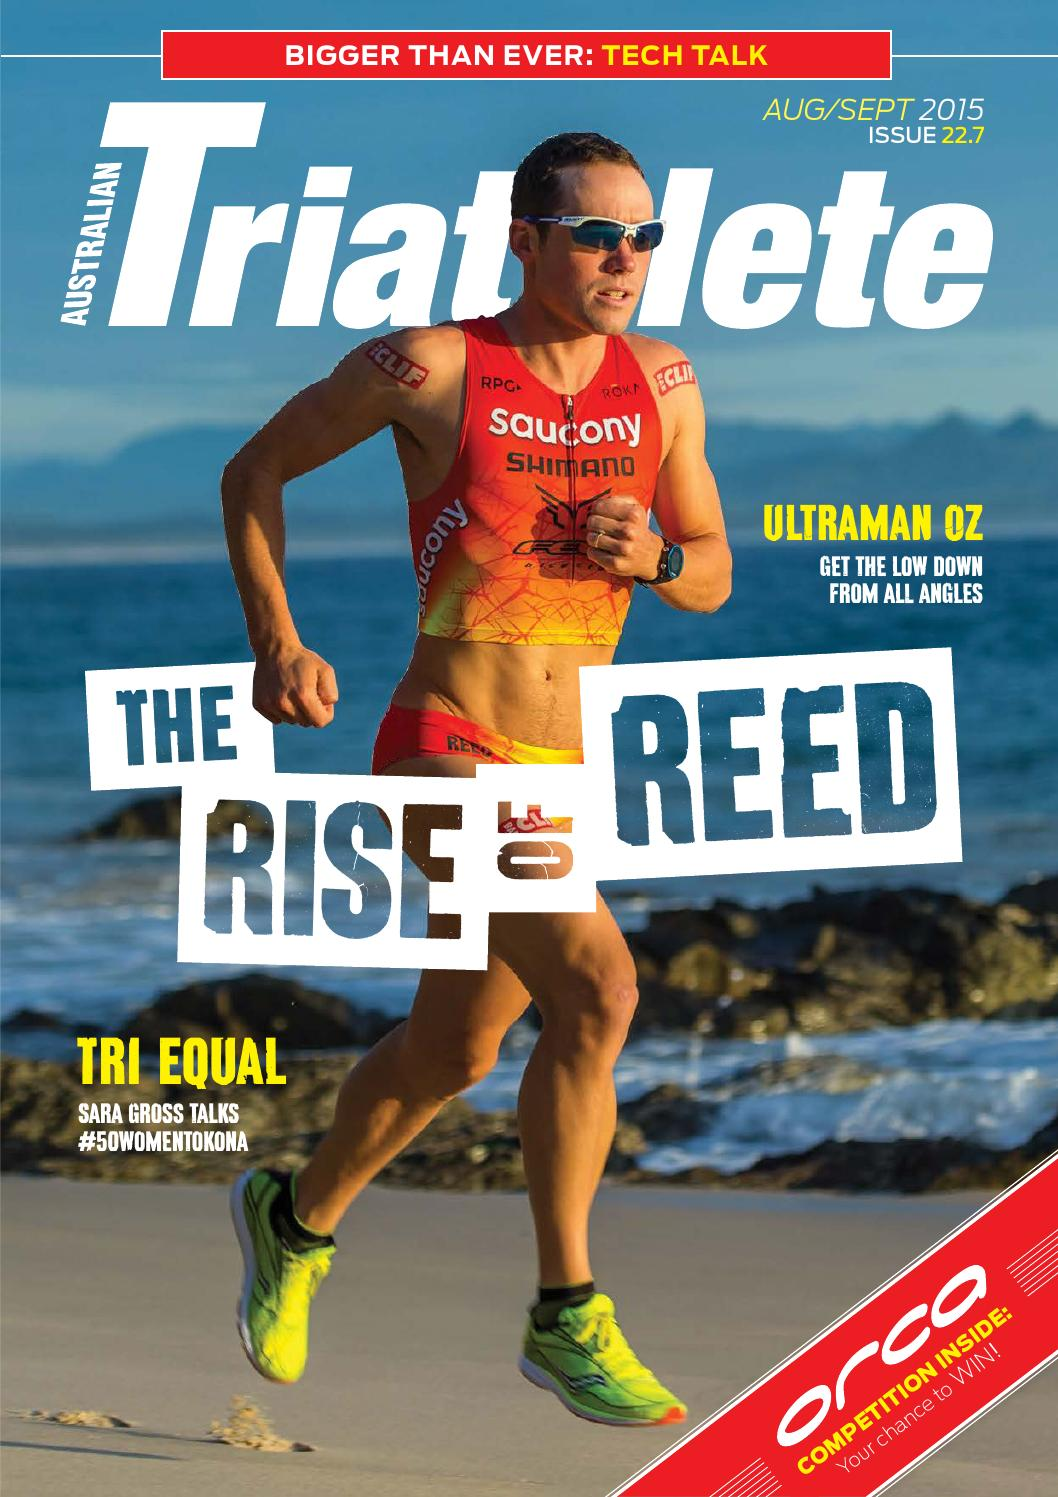 d8b37fa9155 Australian Triathlete Magazine - Aug Sept 2015 by Publicity Press - issuu